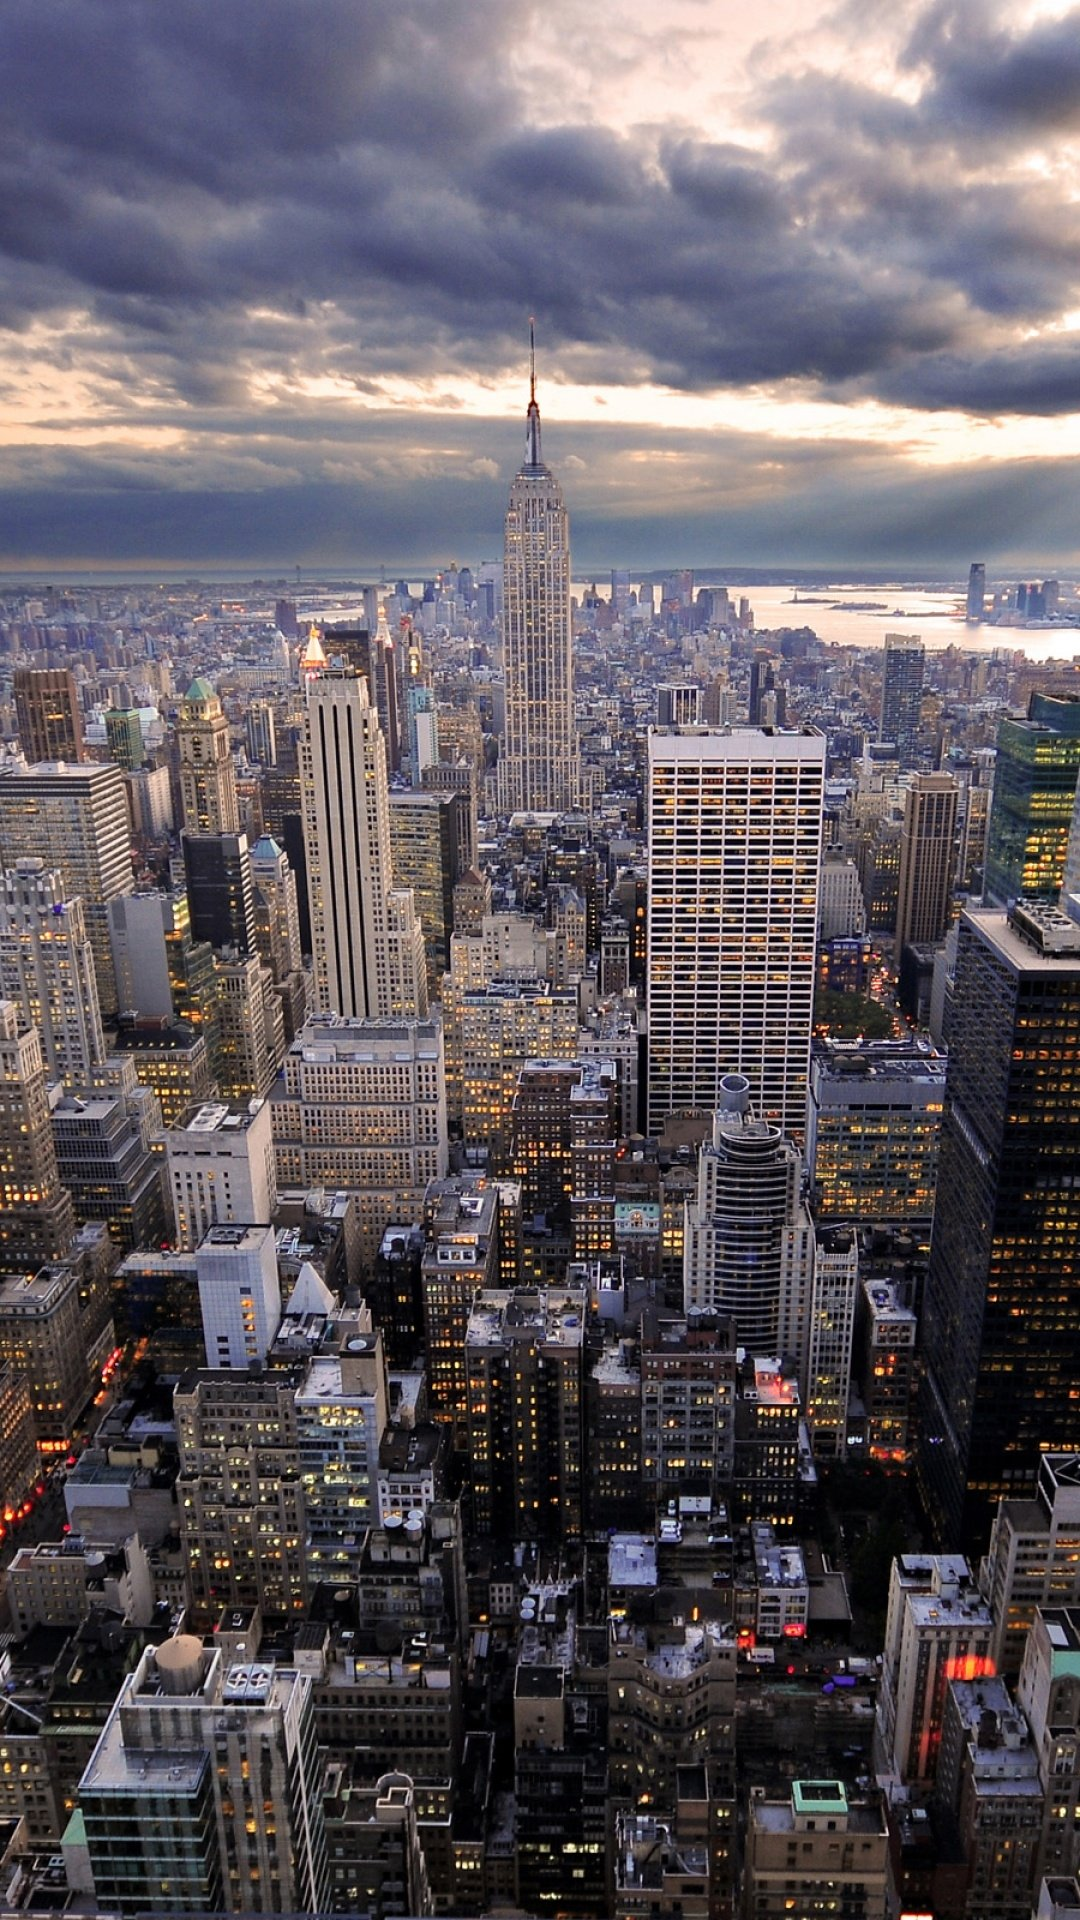 New York Wallpaper for iPhone - WallpaperSafari